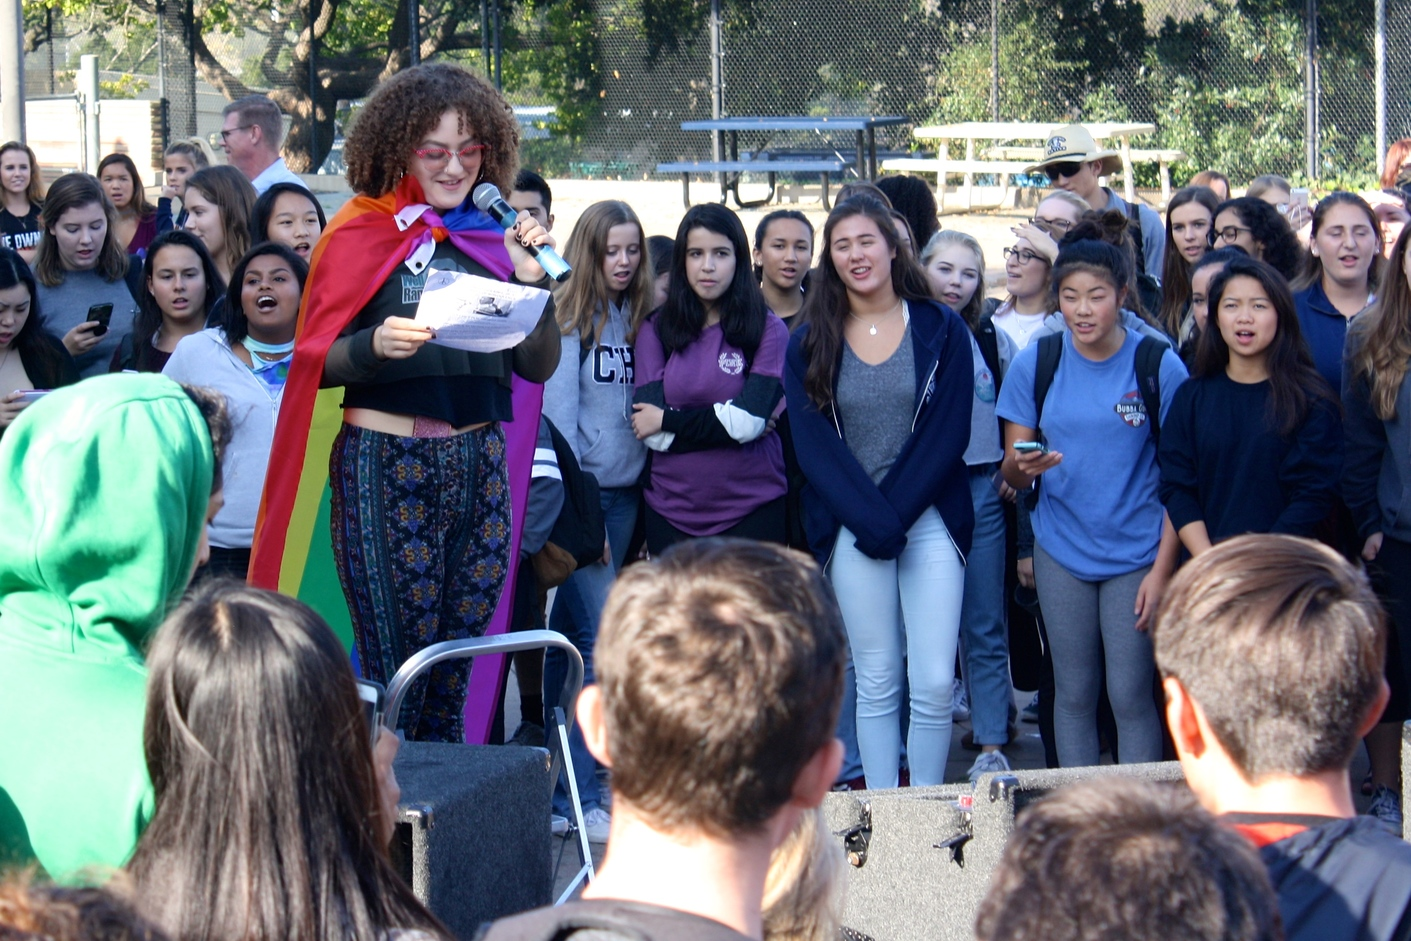 Students crowded around junior Rosie Asmar as she introduced the rally.